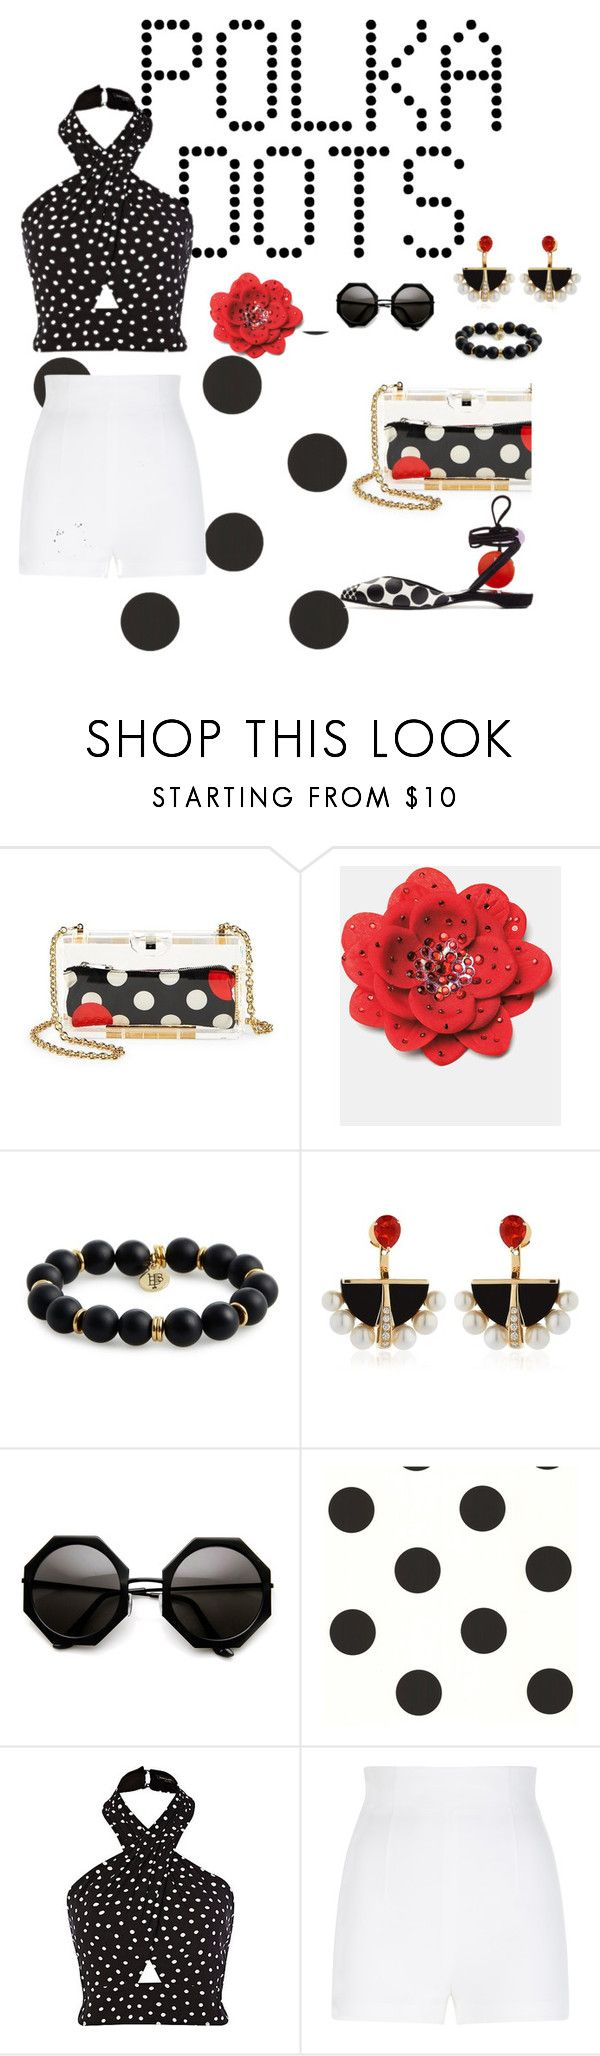 """Polka dot style"" by ch3ll3y-styles ❤ liked on Polyvore featuring RED Valentino, Bourbon and Boweties, Lalique, York Wallcoverings, La Perla and Pierre Hardy"